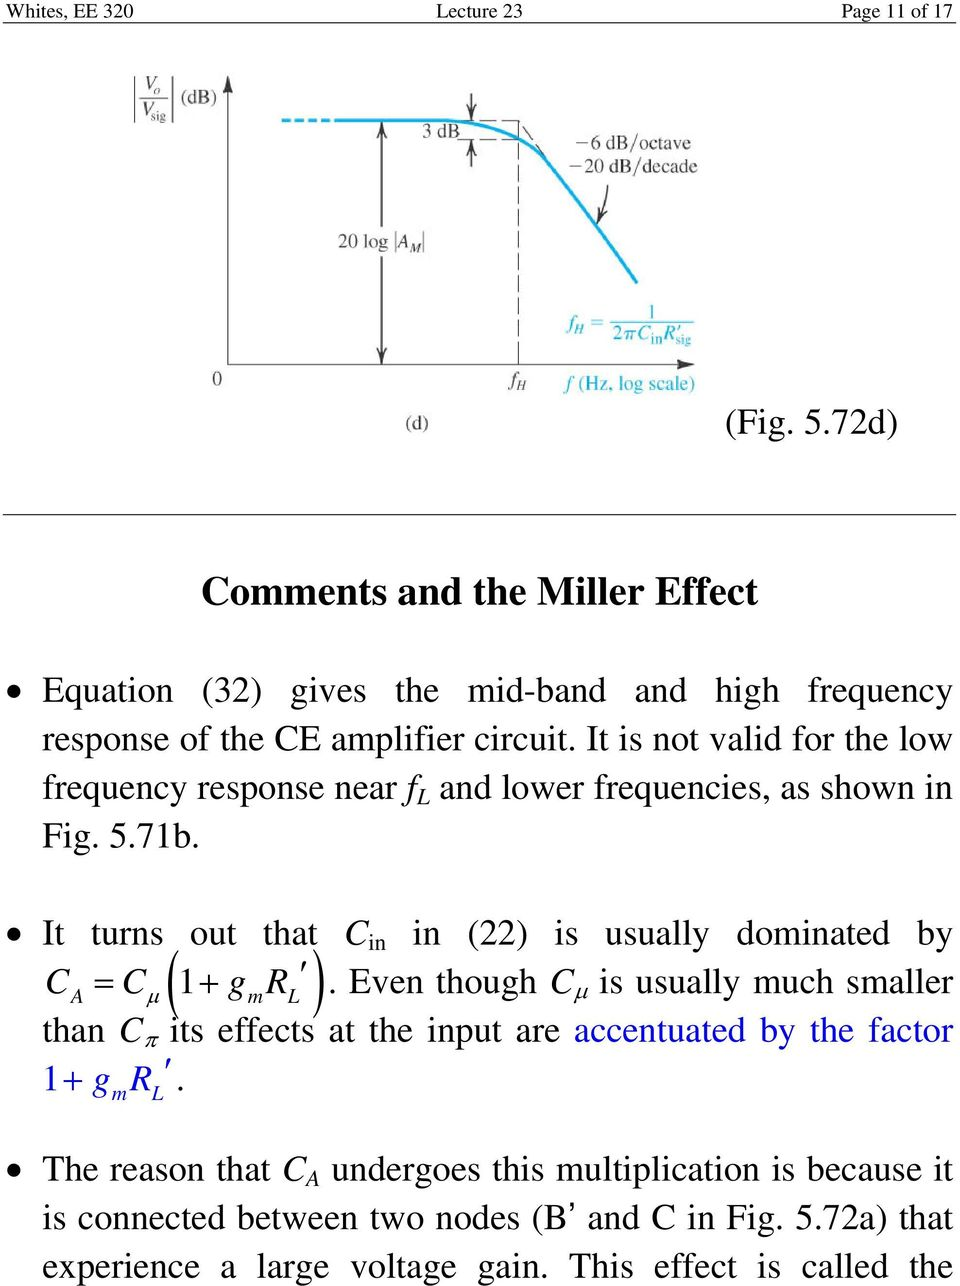 Lecture 23 Common Emitter Amplifier Frequency Response Miller S Op Amp Buffer Http Wwwopencircuitscom Basiccircuitsandcircuit It Is Not Valid For The Low Near F And Lower Frequencies As